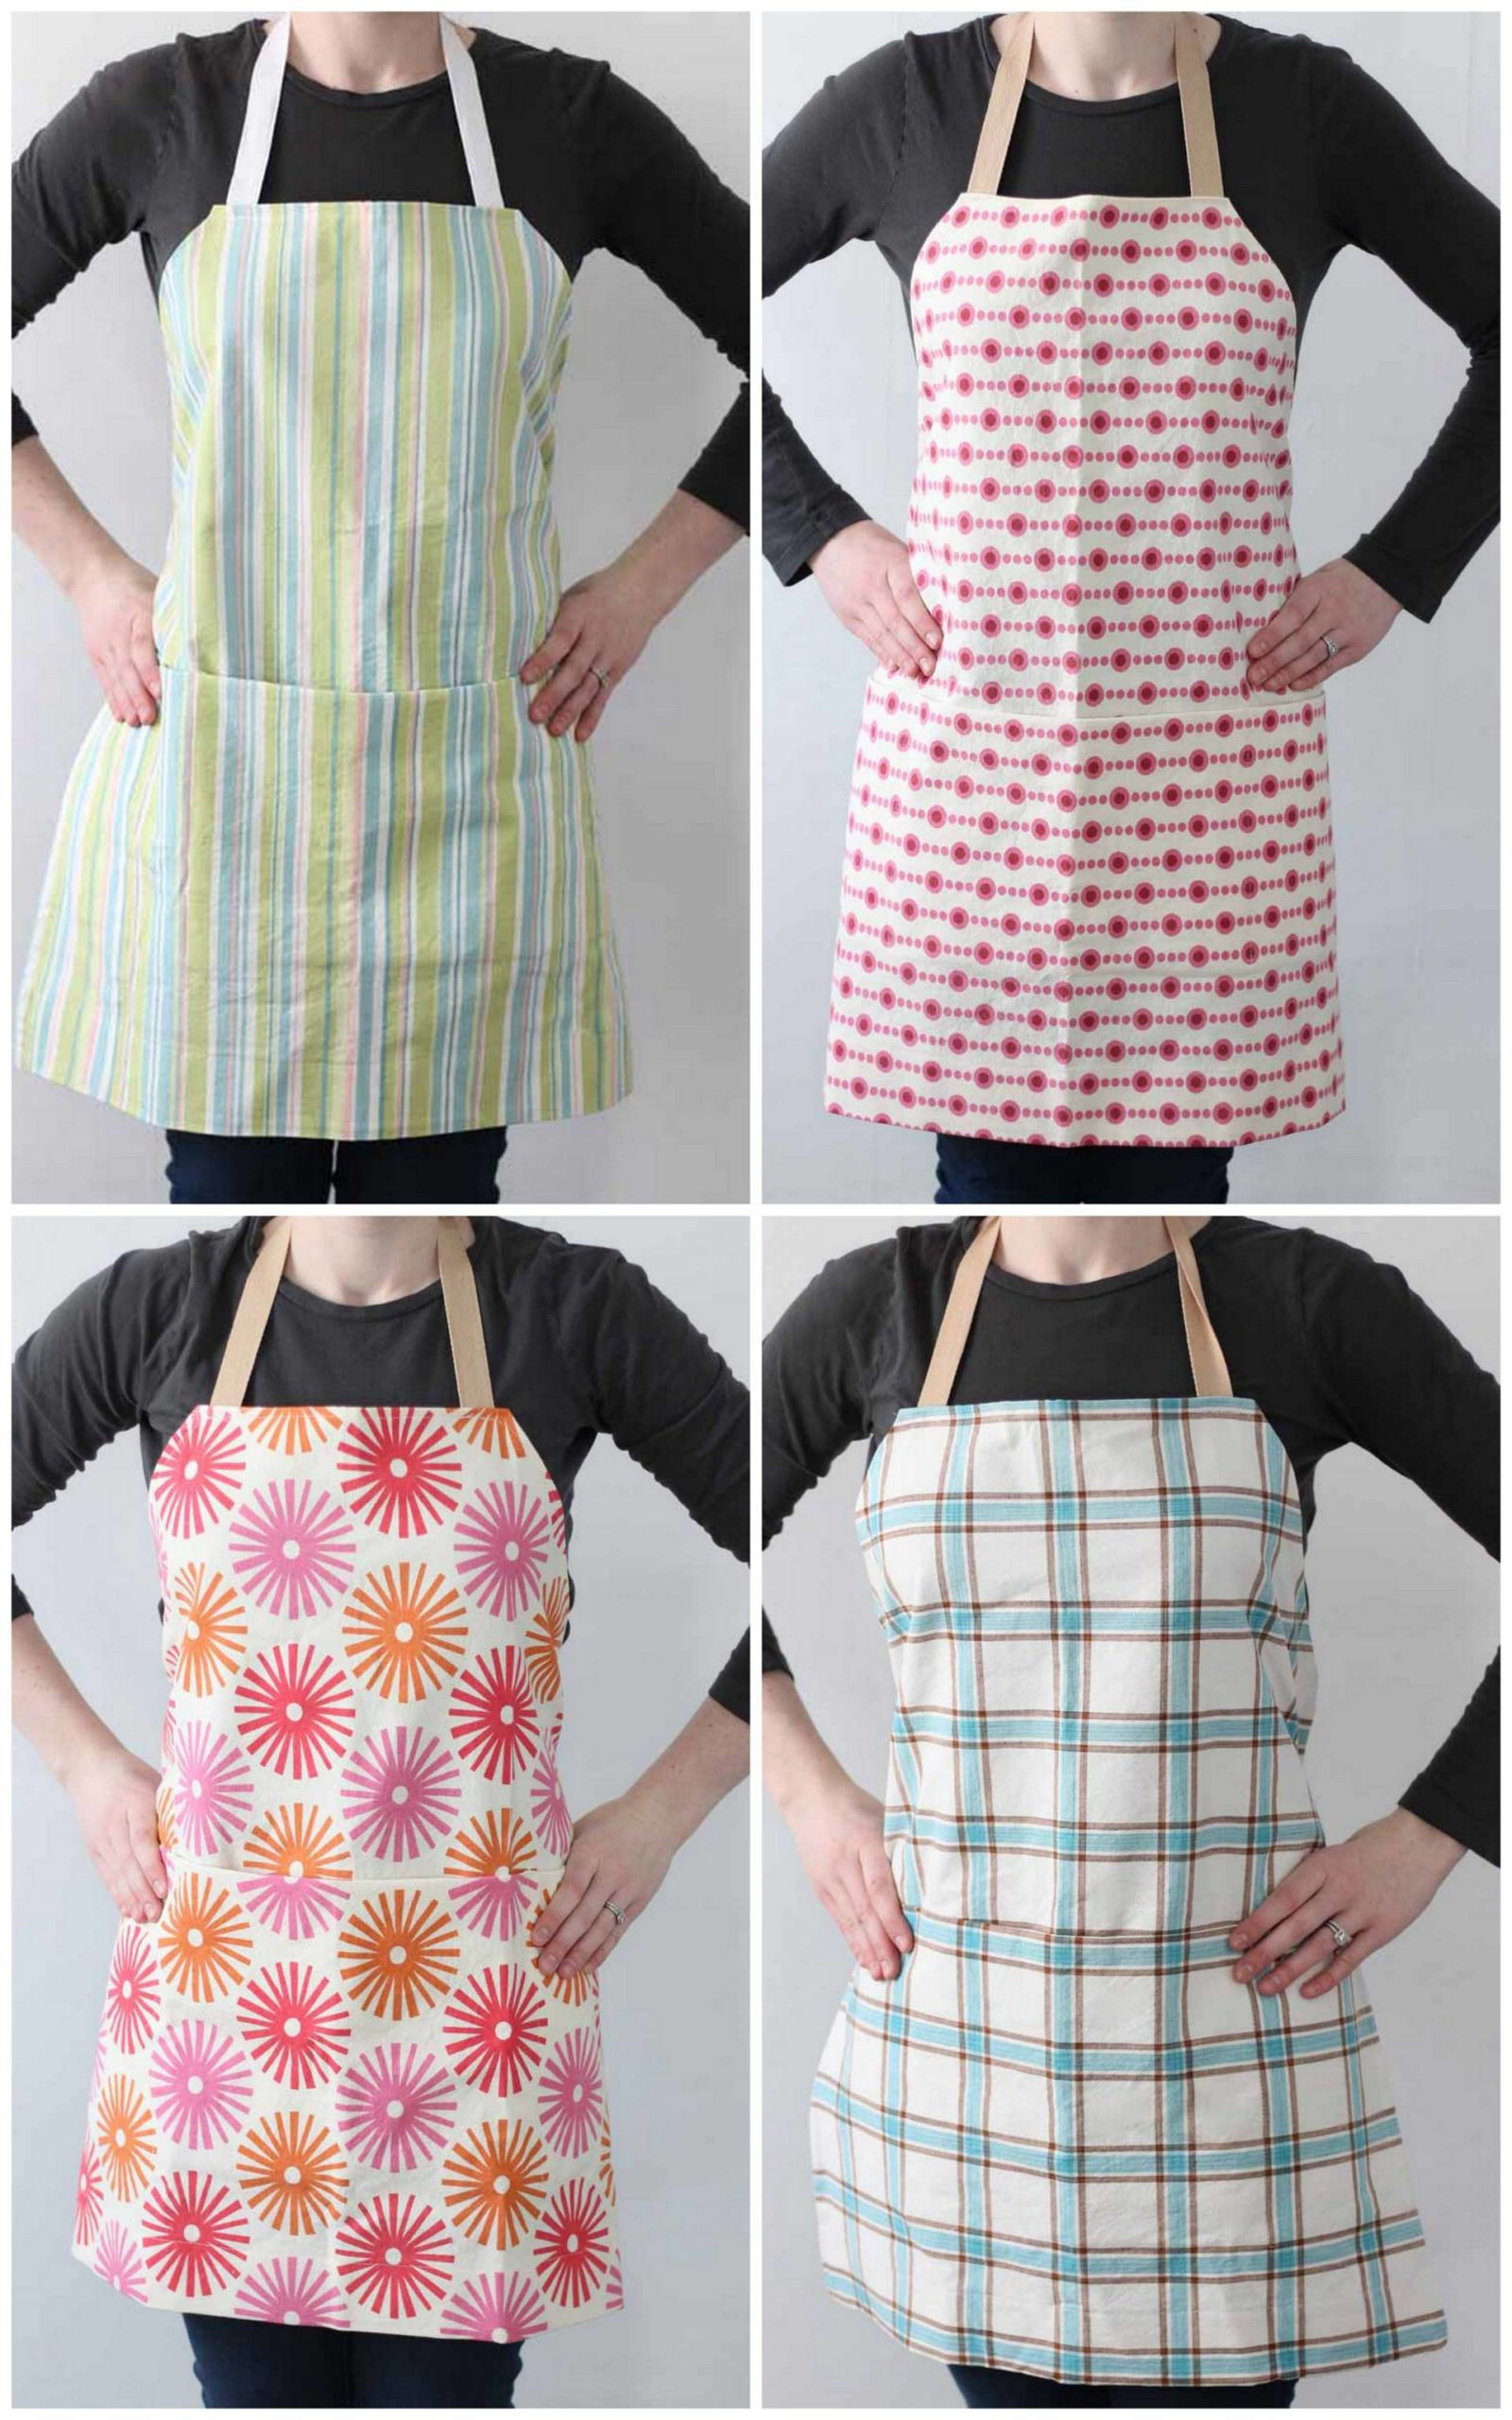 Aprons for sale on Etsy by MostlySewing